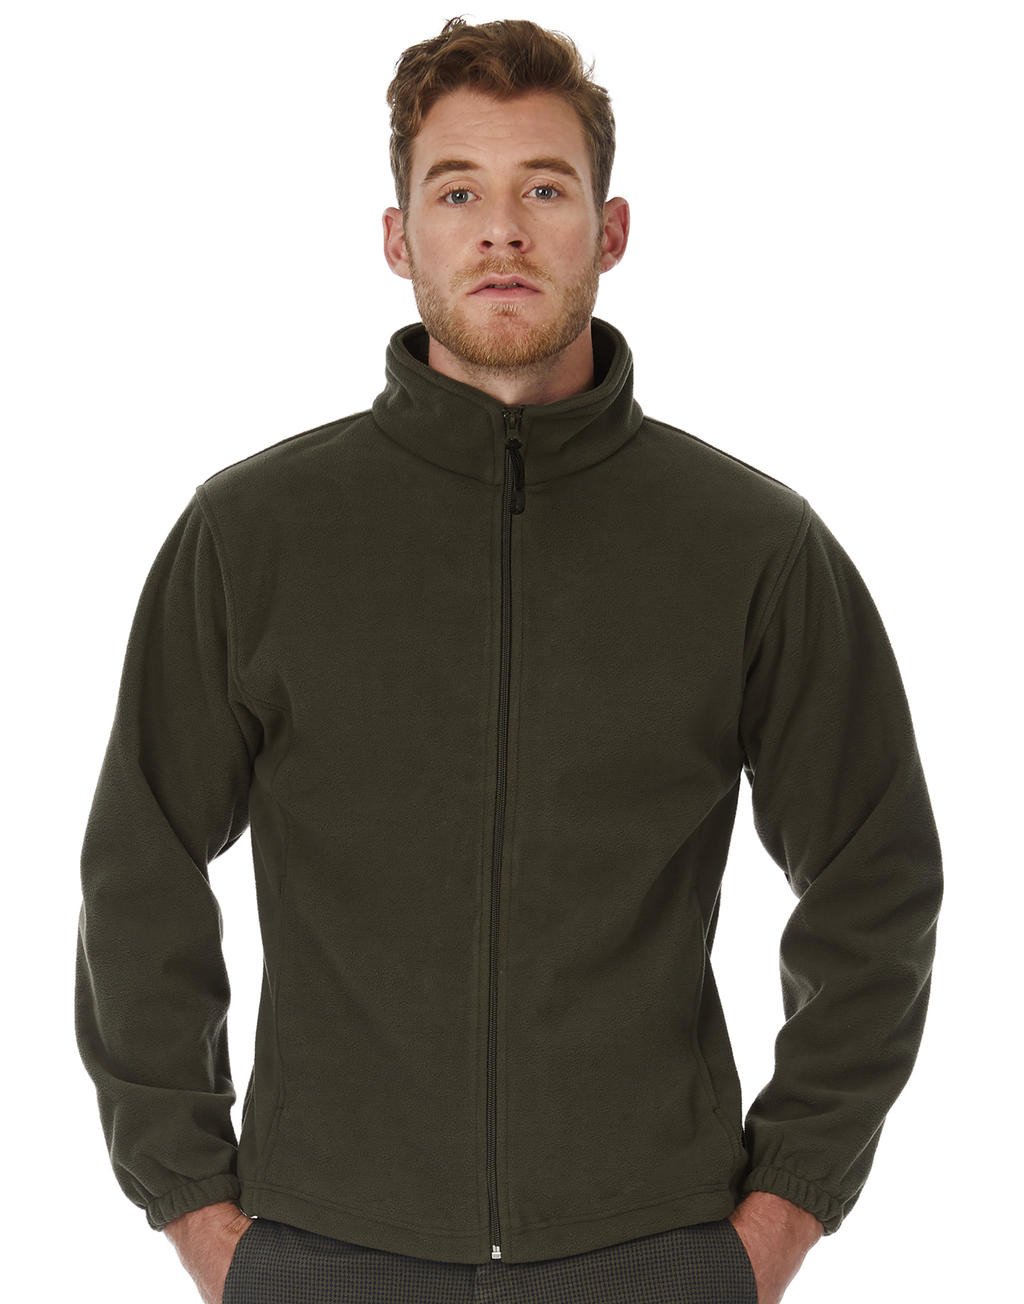 B&C WindProtek Waterproof Fleece Jacket